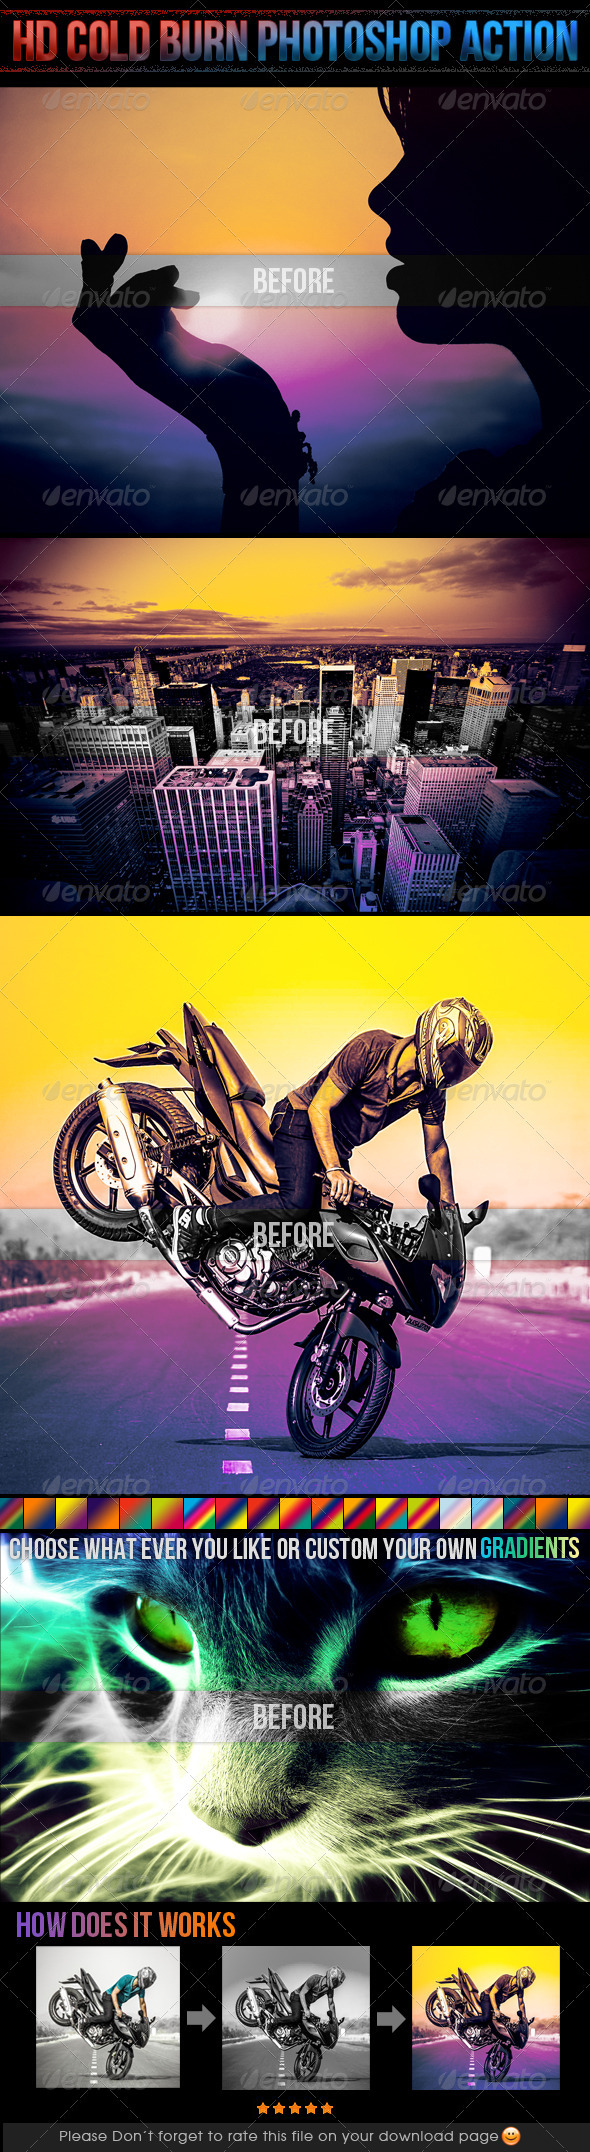 GraphicRiver HD Cold Burn Photoshop Action 3936236